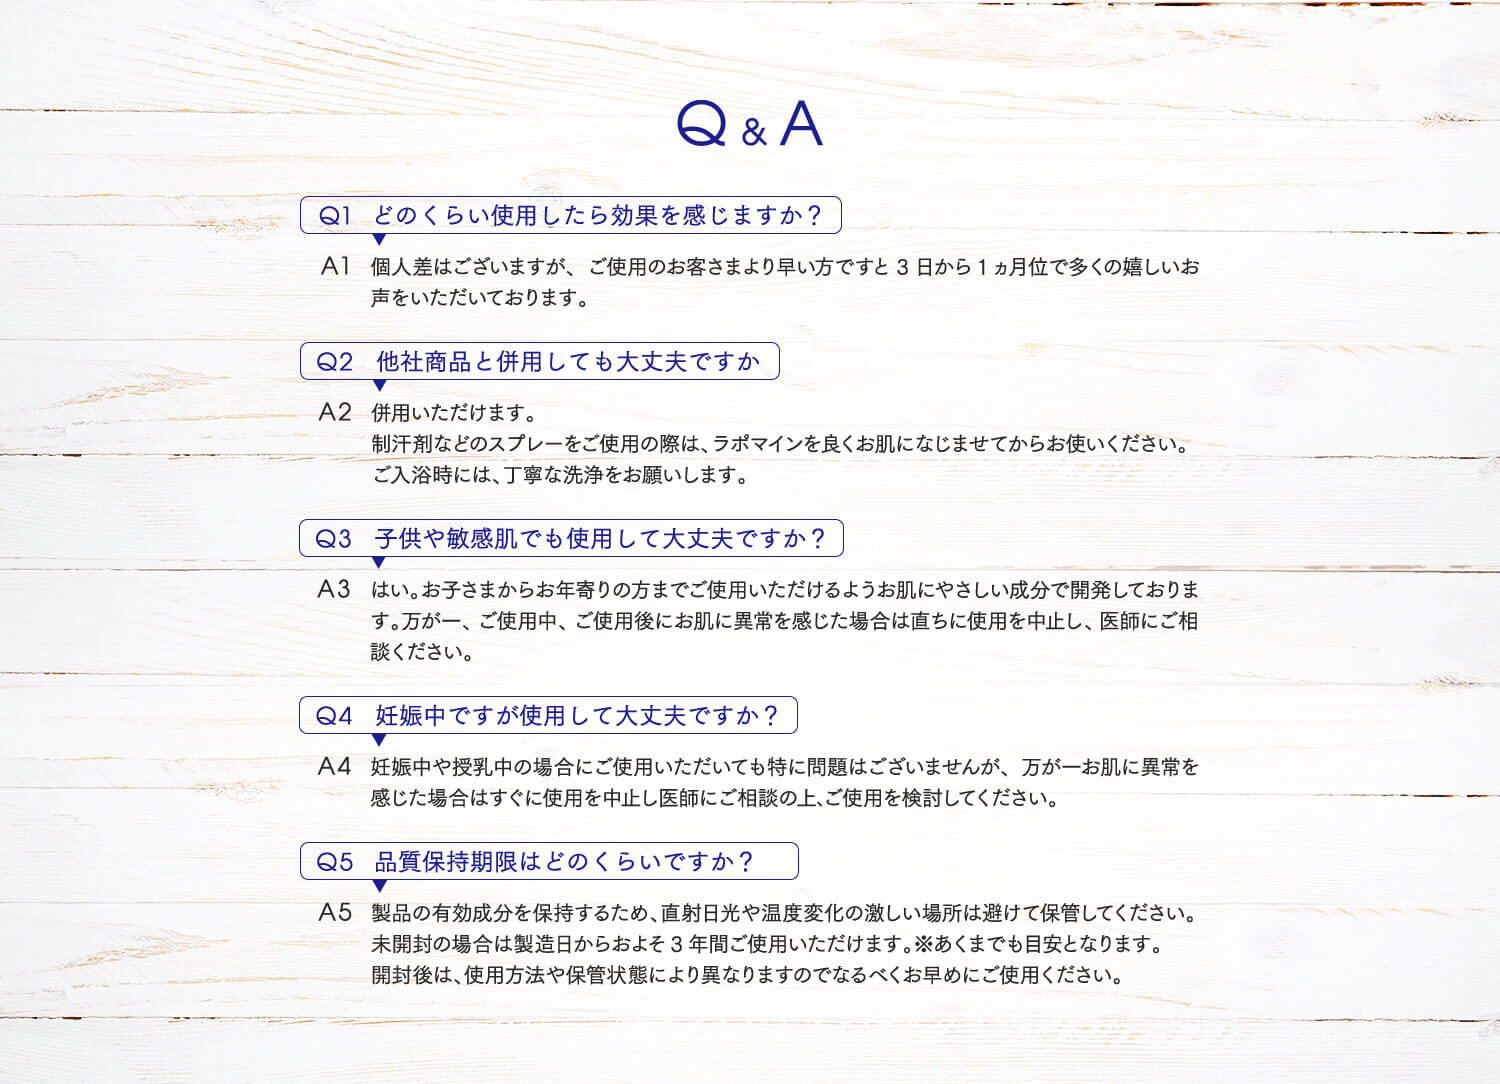 Lapomine Q&A